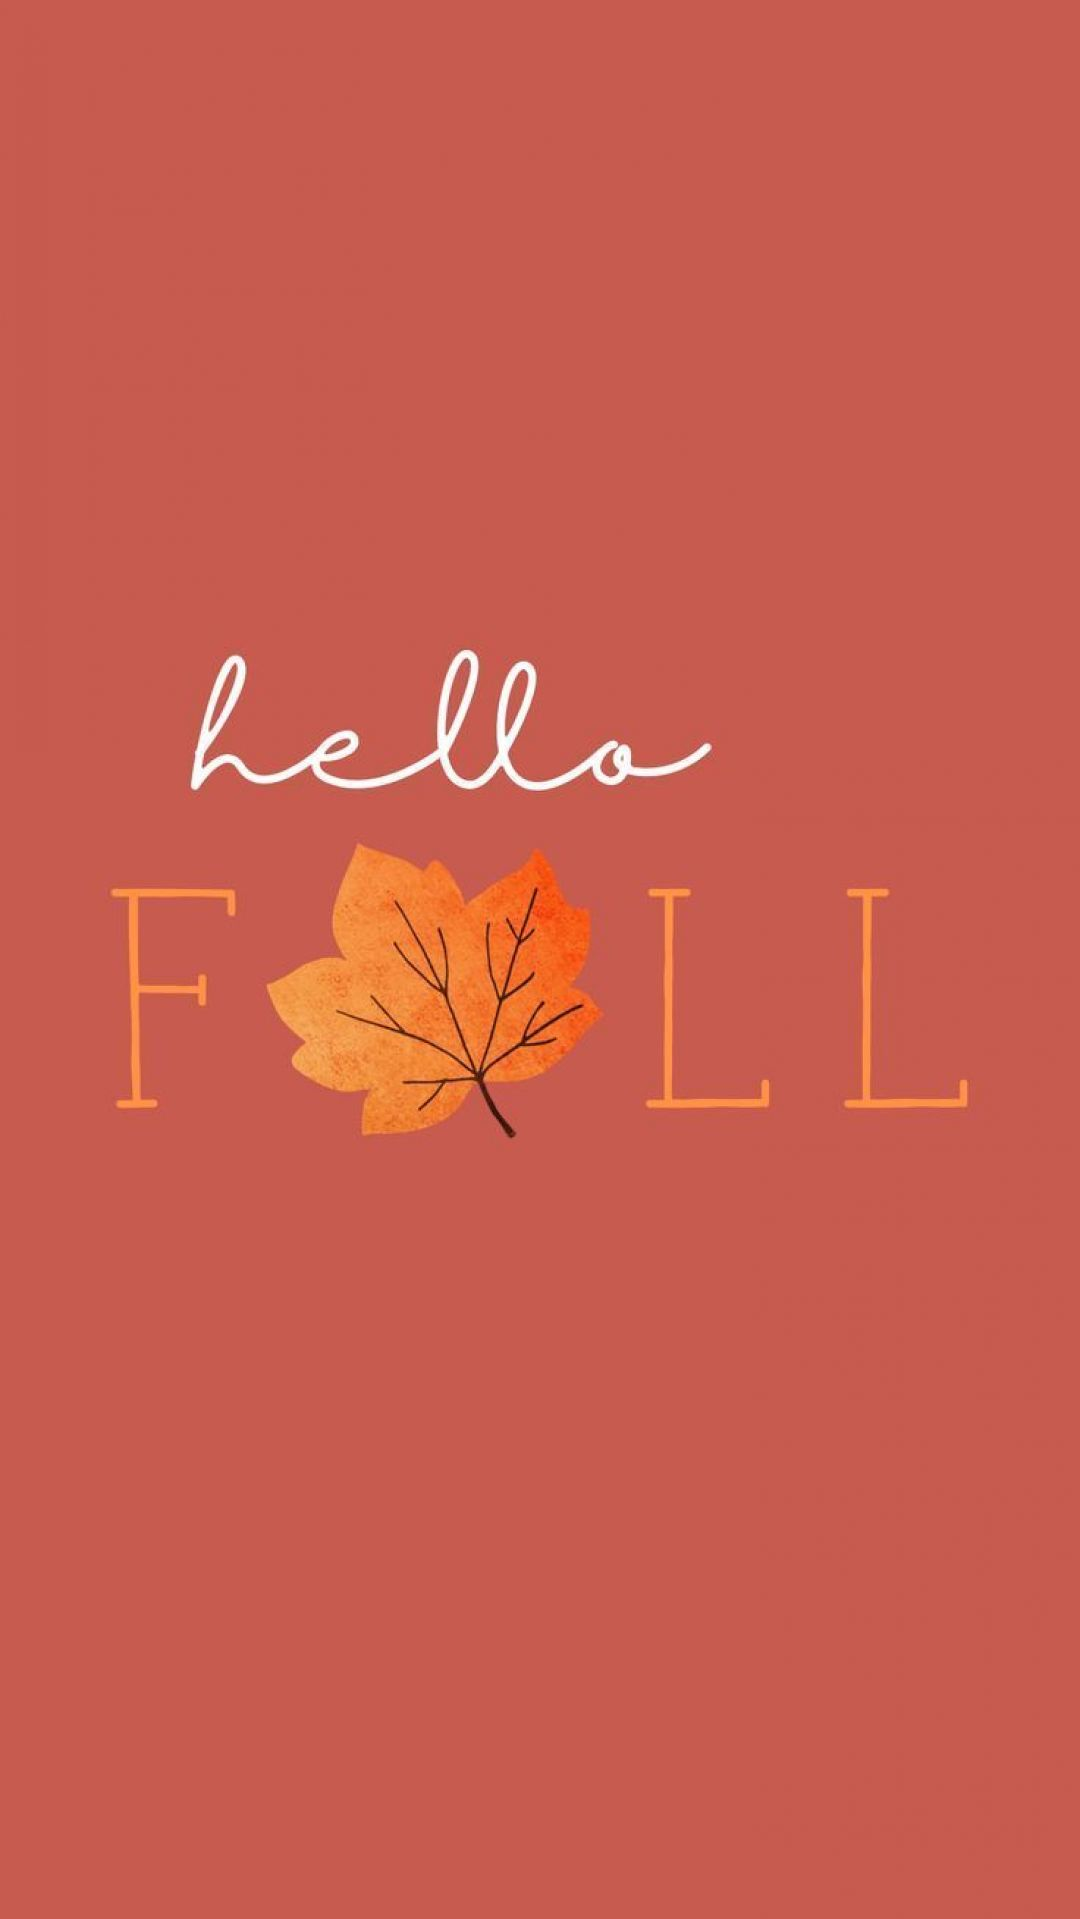 hello autumn aesthetichd wallpapers desktop background android iphone 1080p 4k ommtf